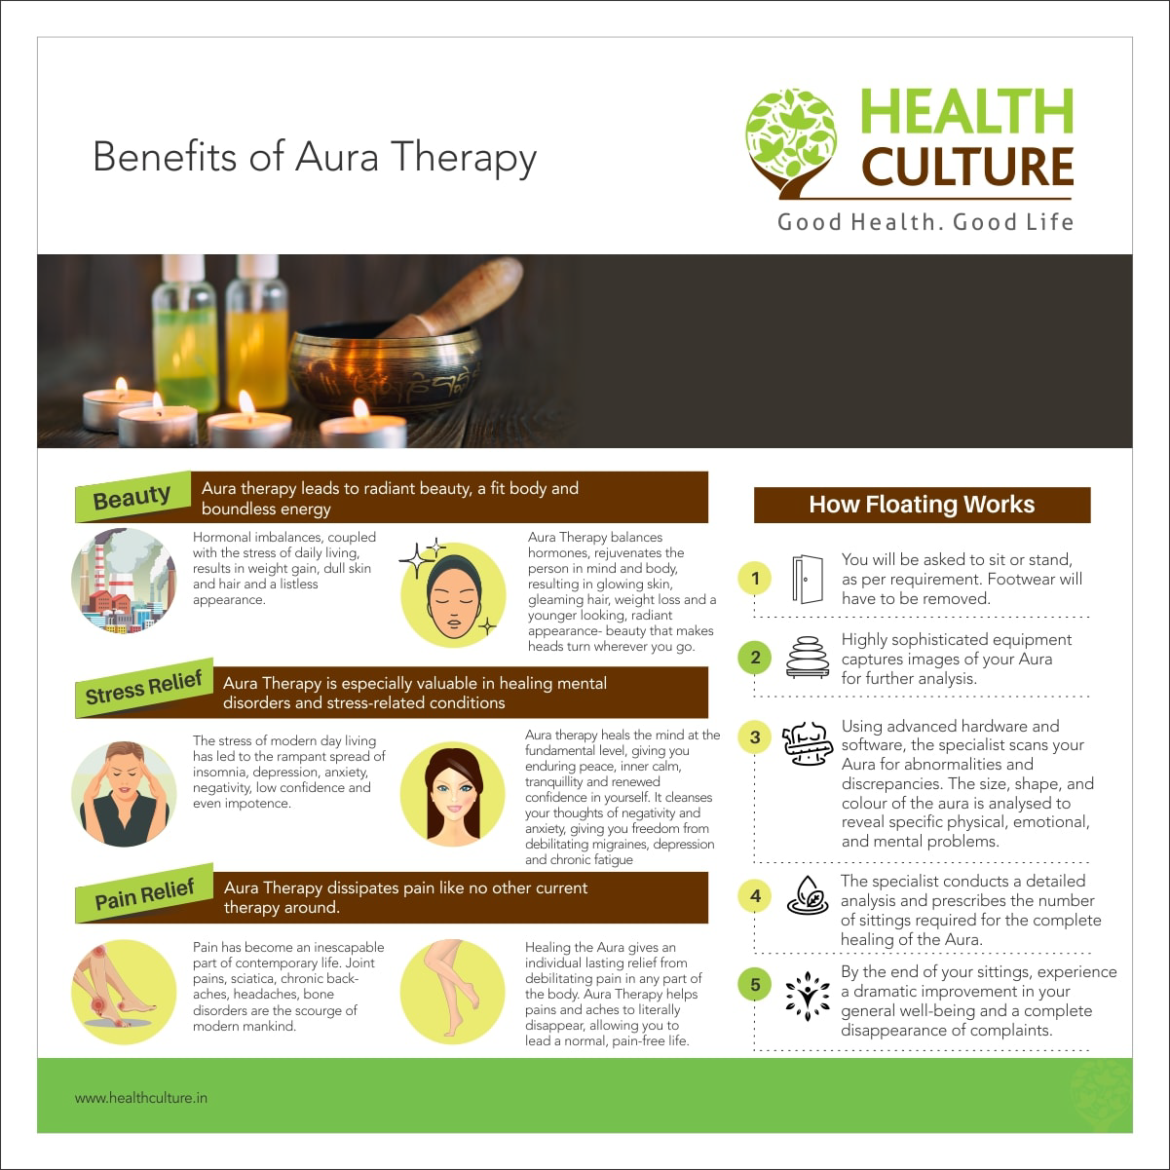 Benefits of Aura Therapy Article - Health Culture